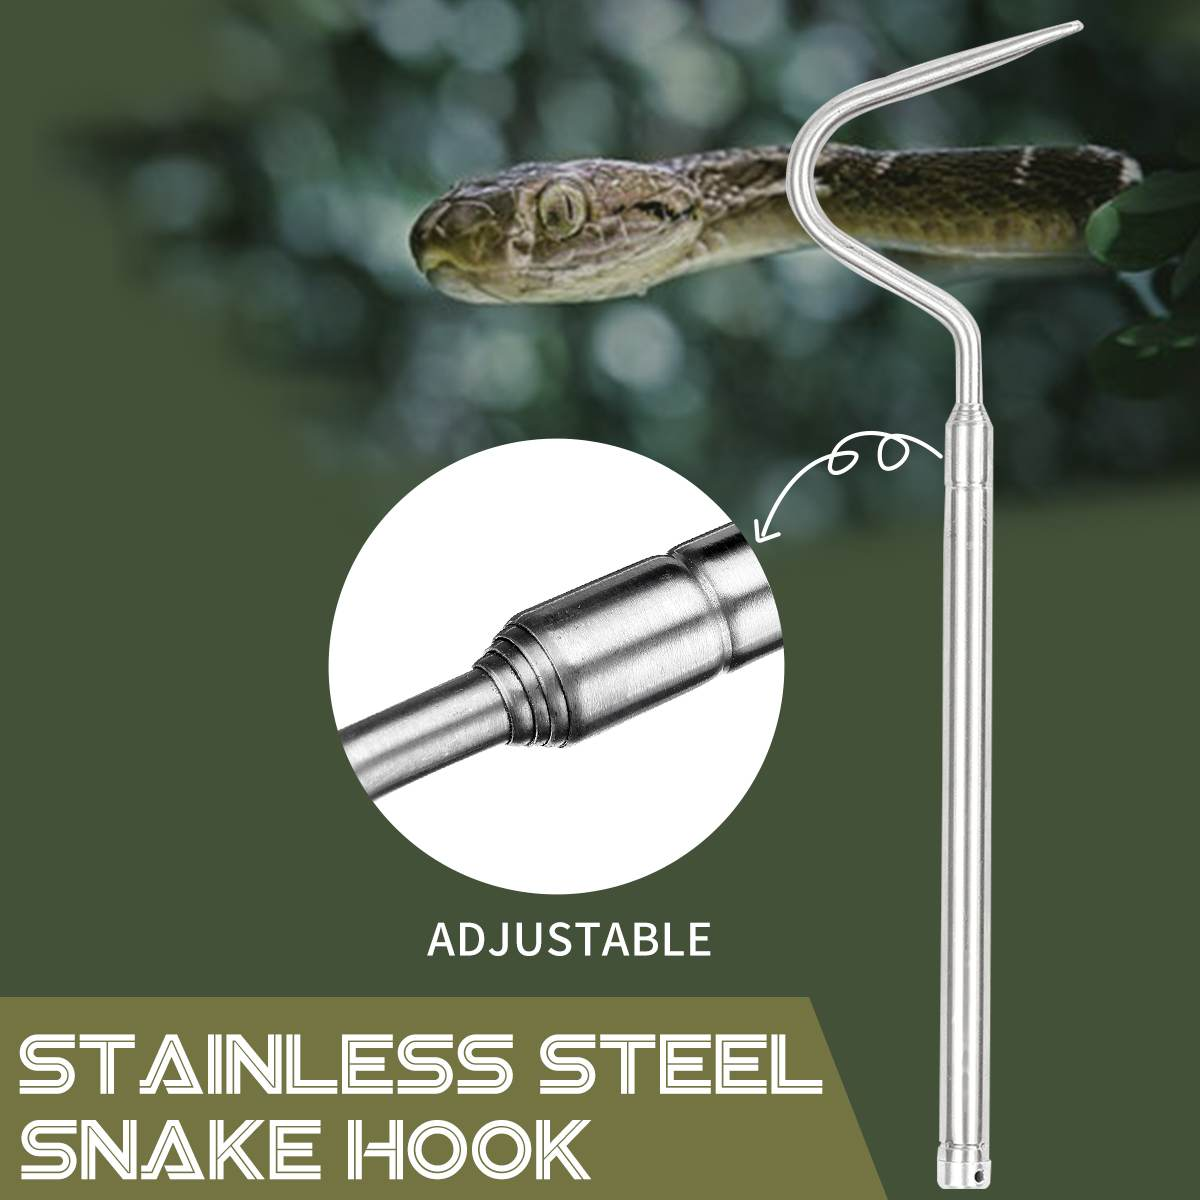 Durable Telescopic Reptile Snake Tongs Stick Snake Catcher Snake Clamp Grabber Wide Jaw Tongs Tool Heavy Duty Stainless Steel